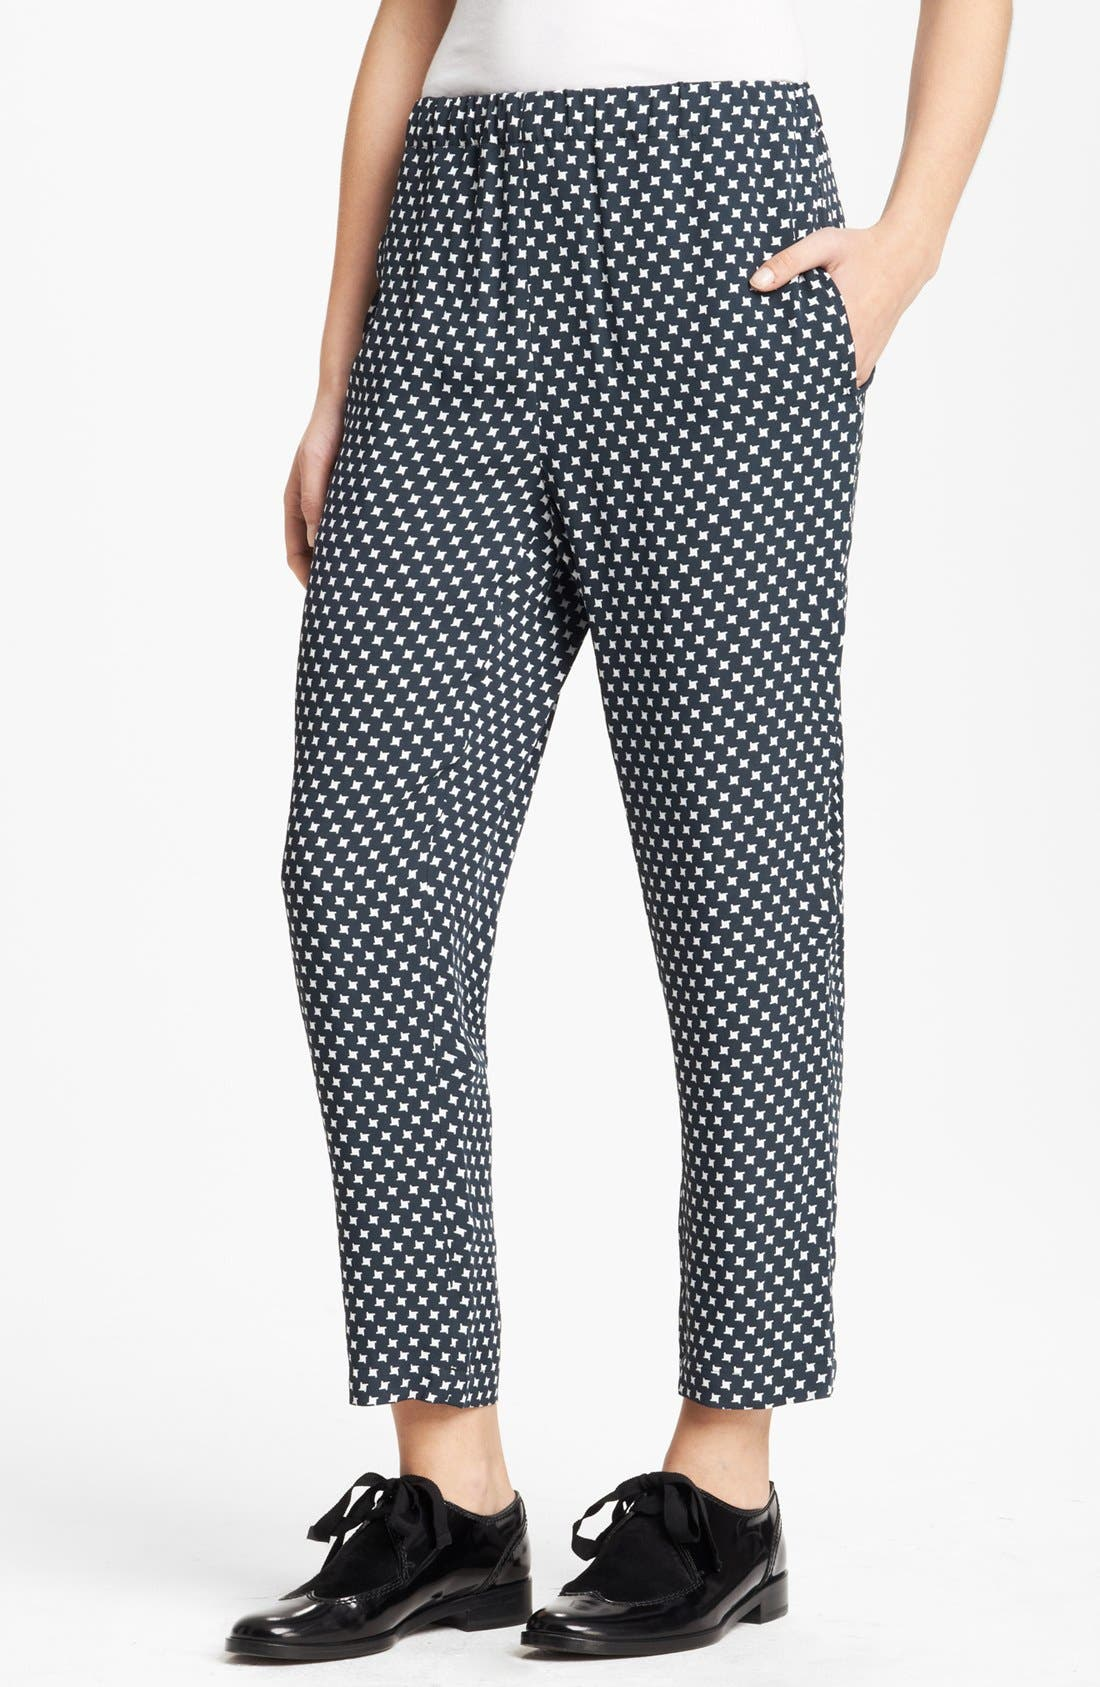 Alternate Image 1 Selected - Marni Houndstooth Print Crop Pants